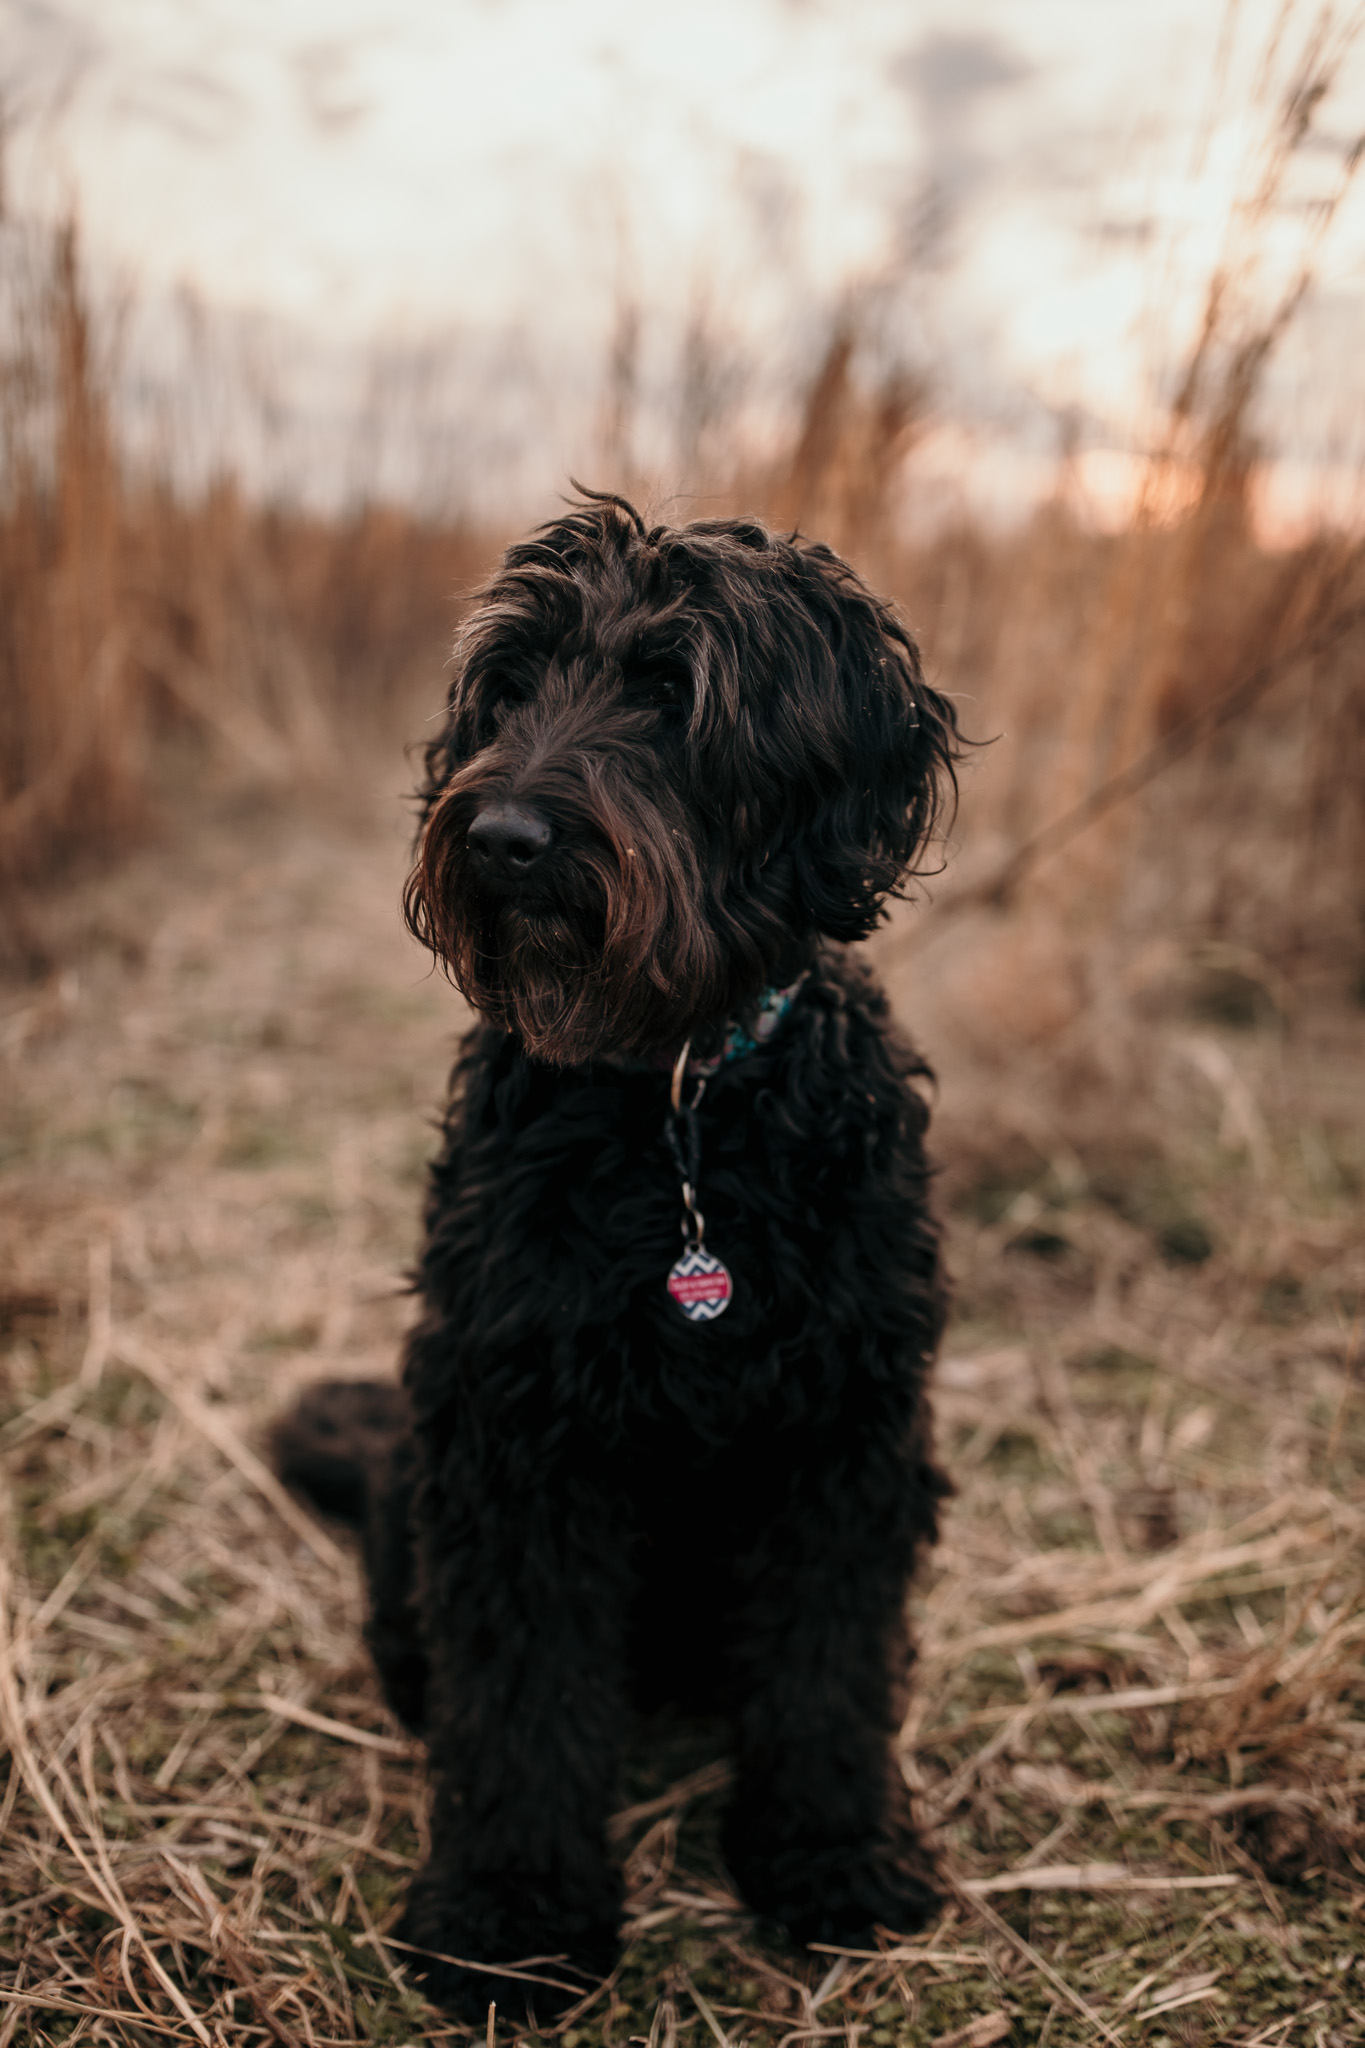 Goldlendoodle Sitting in Field